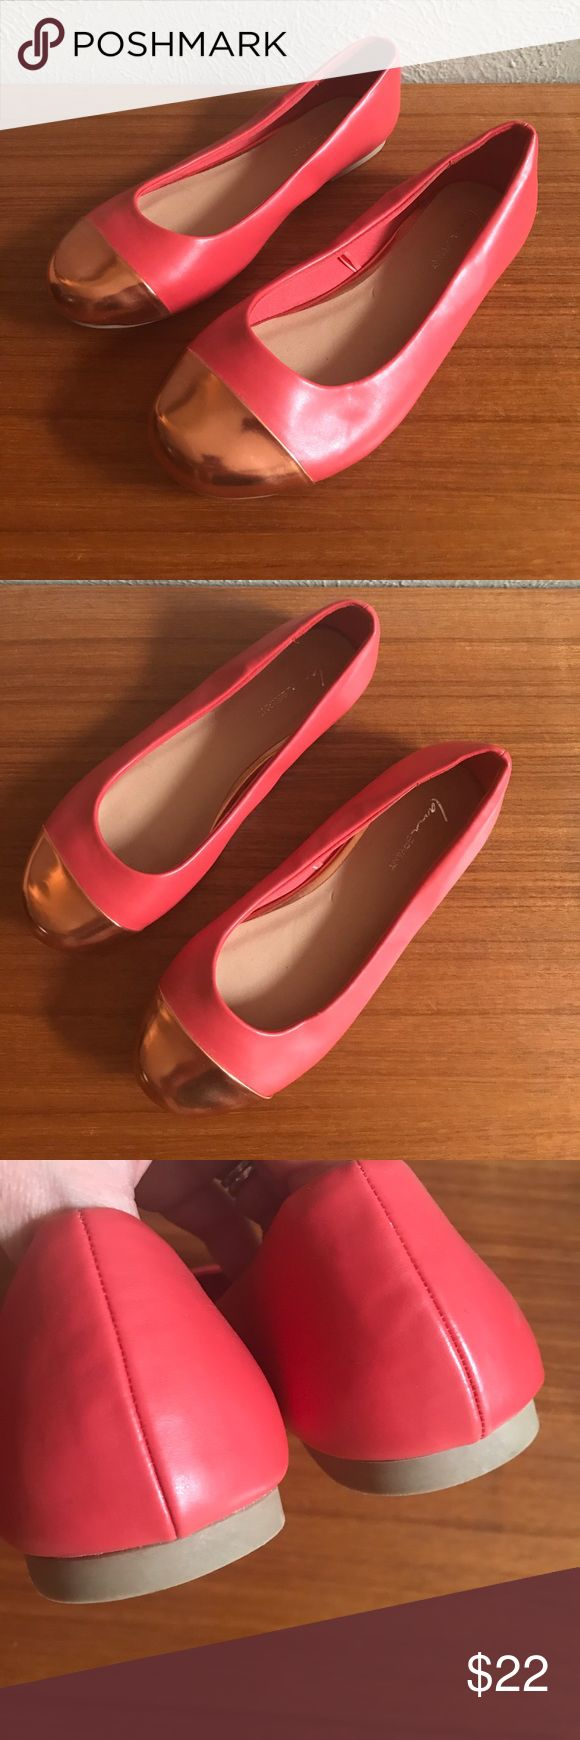 Lane Bryant pink and rose gold cap flats These are in great used condition!  9W. All man made materials Lane Bryant Shoes Flats & Loafers